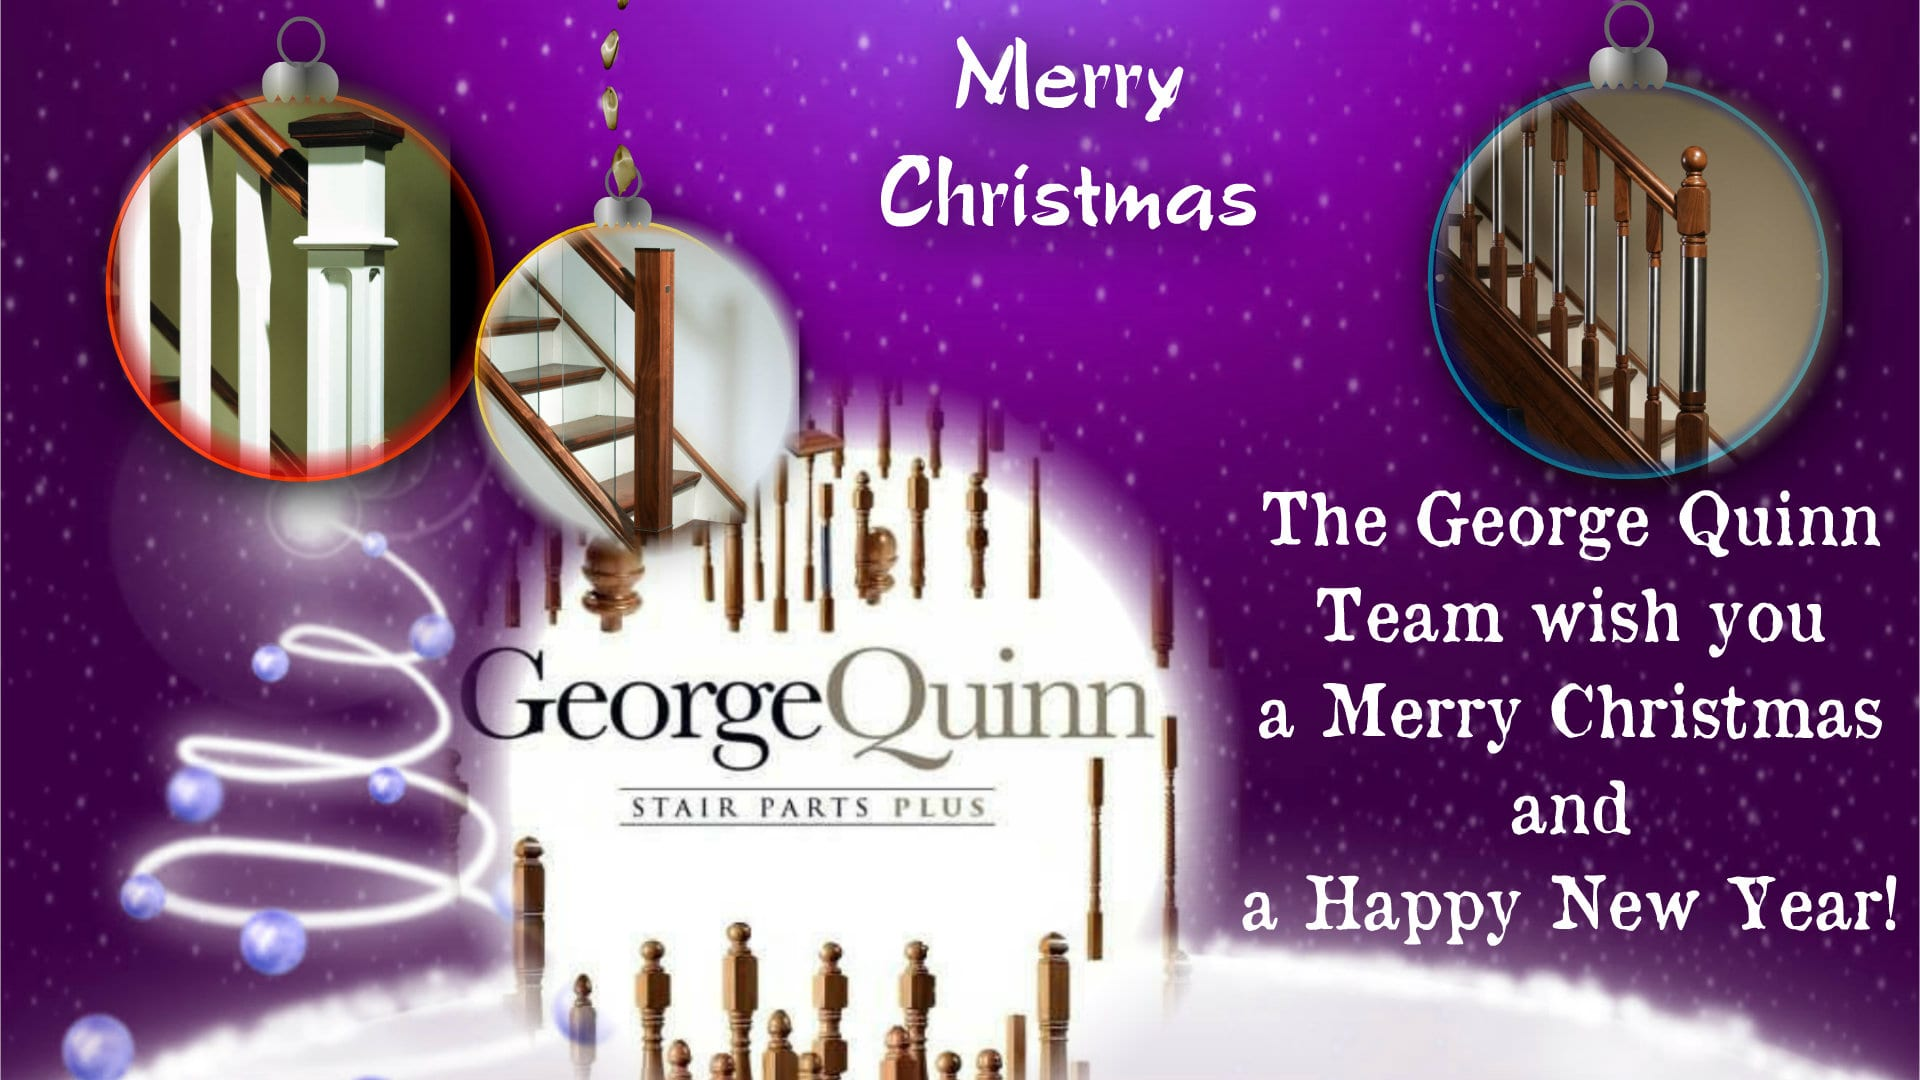 George Quinn Stair Parts Plus - Christmas & New Year 2017